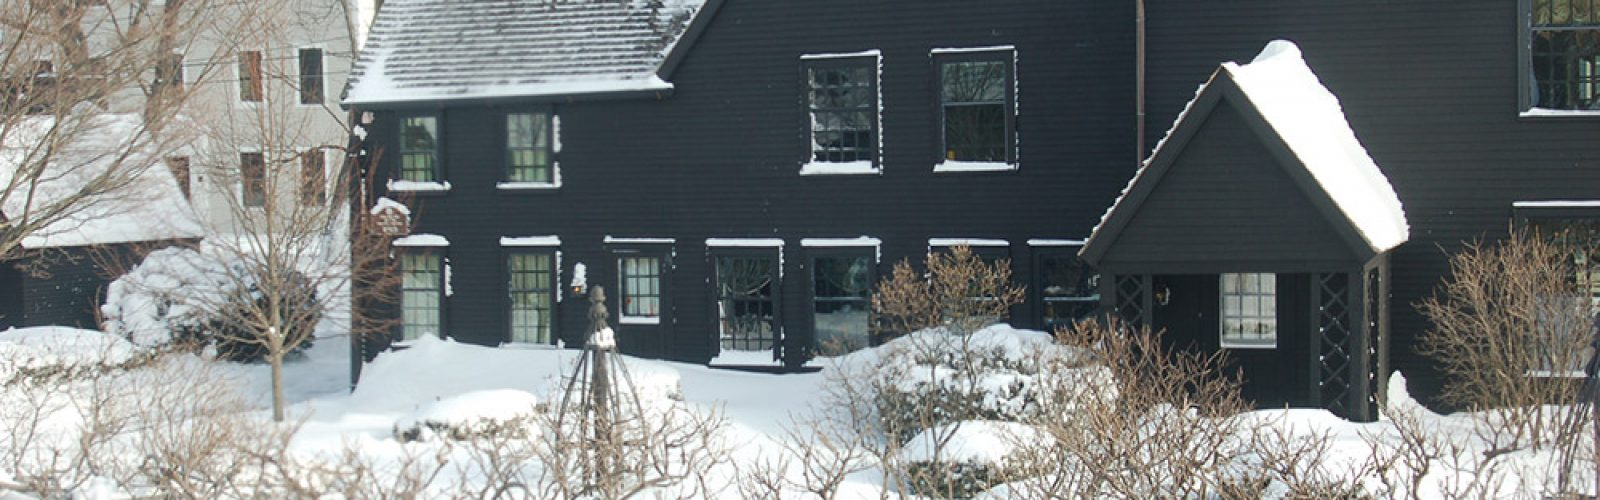 Snow covering the House of the Seven Gables in the winter of 2015.